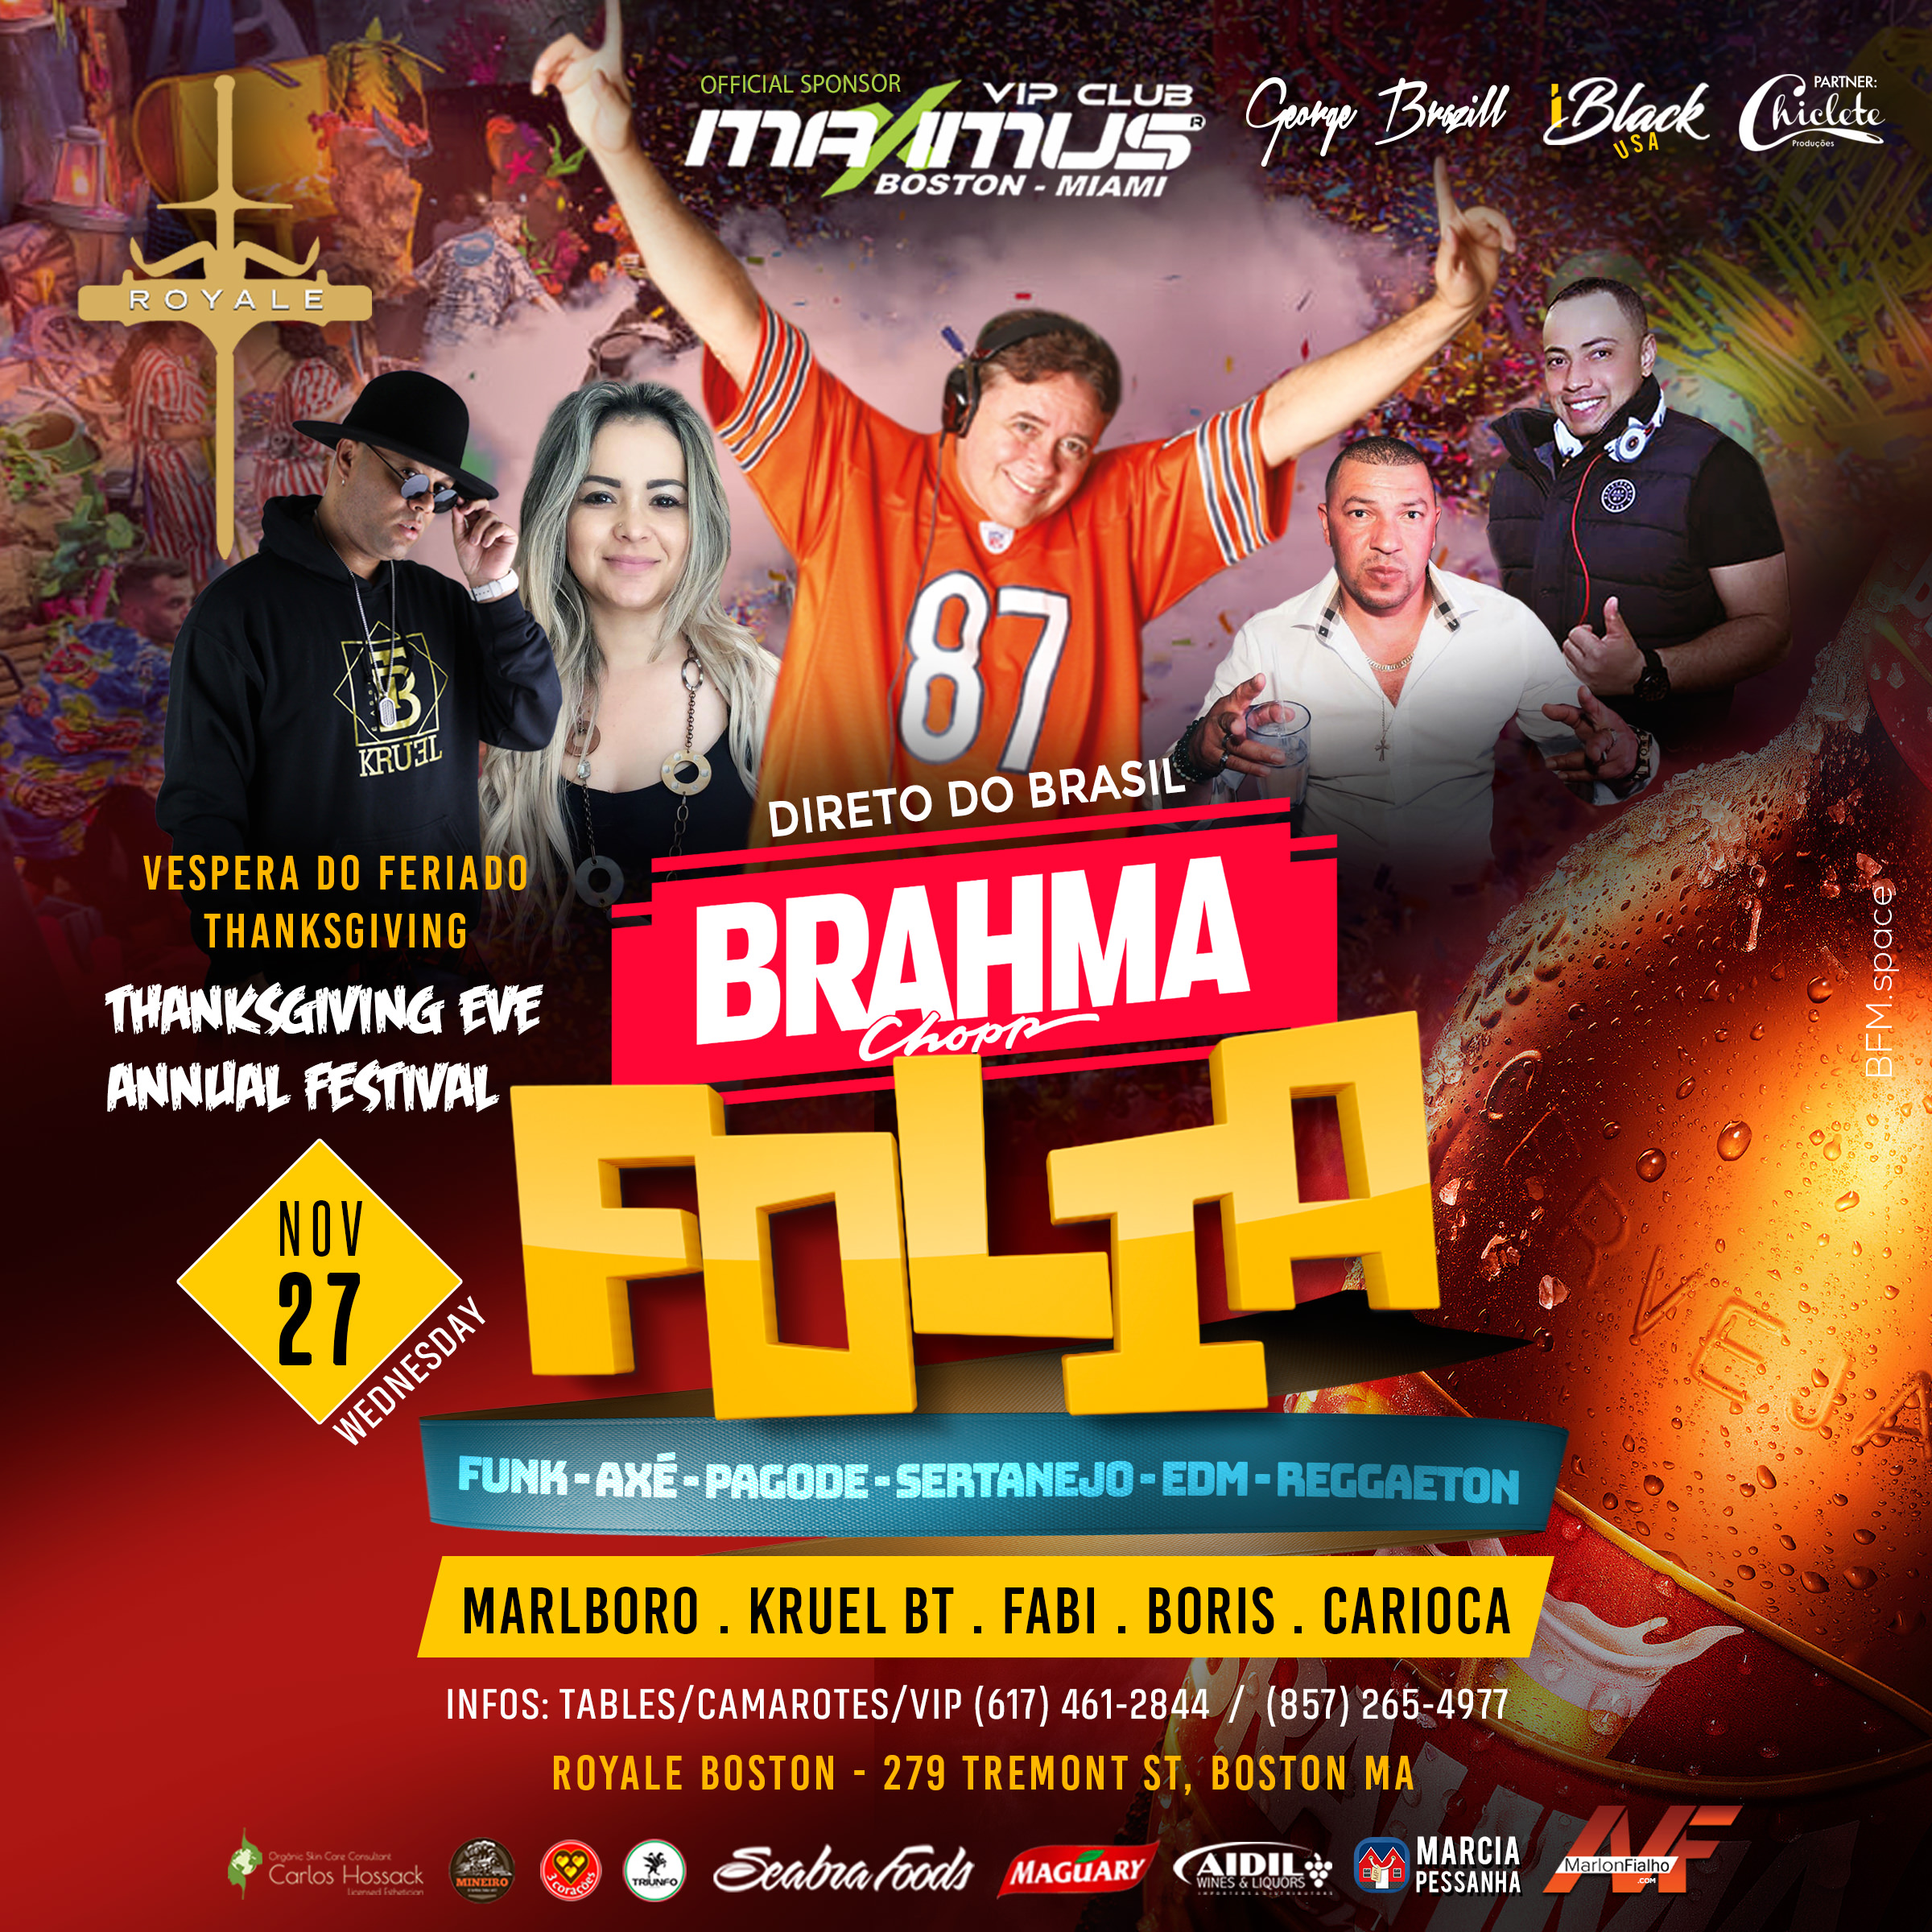 BRAHMA FOLIA ROYALE BOSTON 27 NOV | iBlackUSA